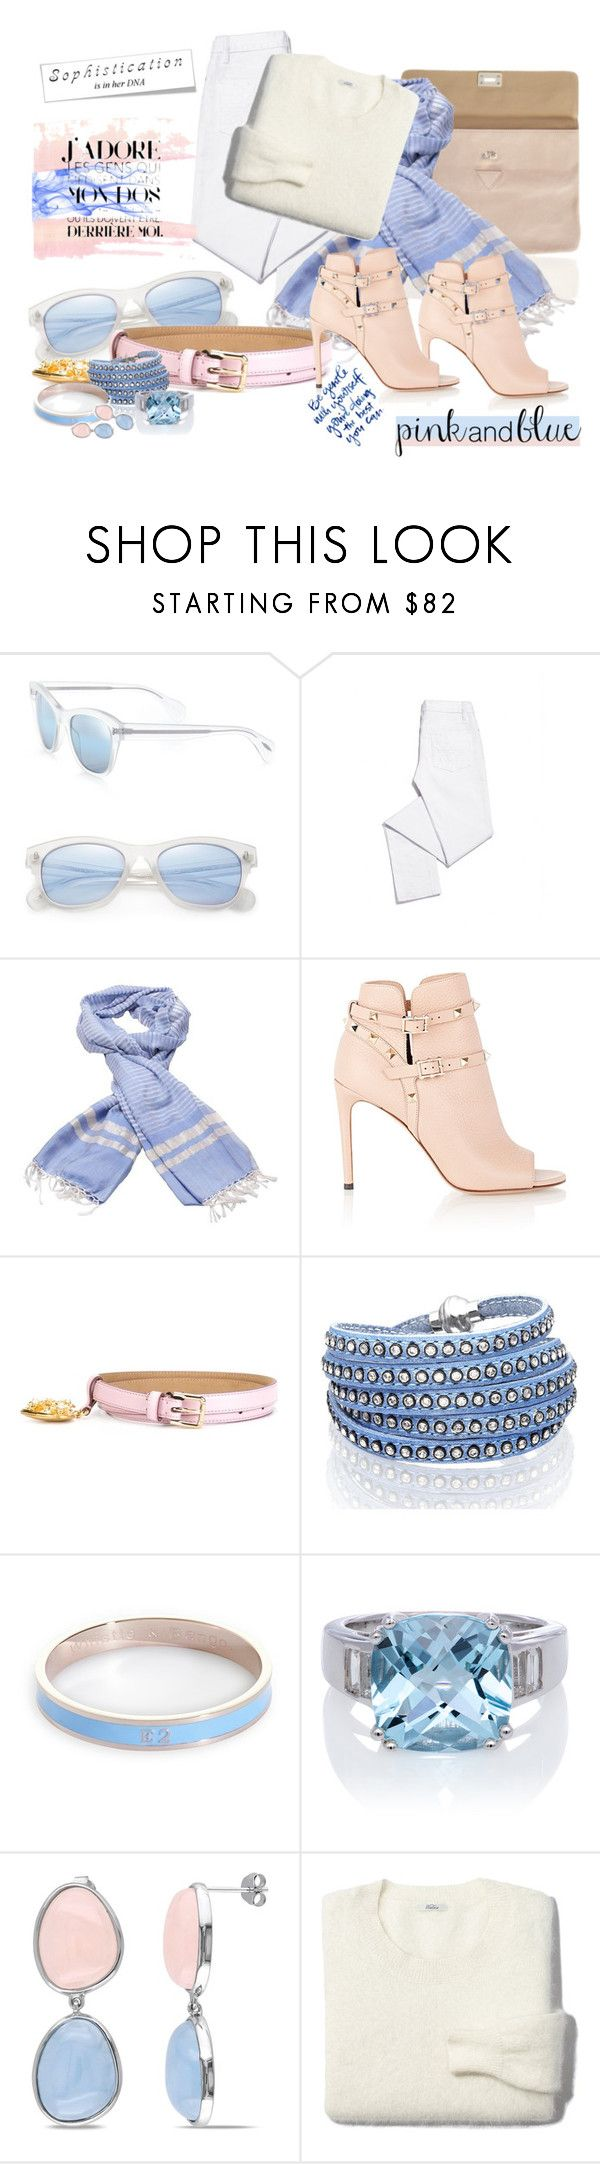 """""""2016 Pantone"""" by mrs-rc ❤ liked on Polyvore featuring Oliver Peoples, Tory Burch, Valentino, Dolce&Gabbana, Sif Jakobs Jewellery, Whistle & Bango, Ice, Madewell, women's clothing and women"""